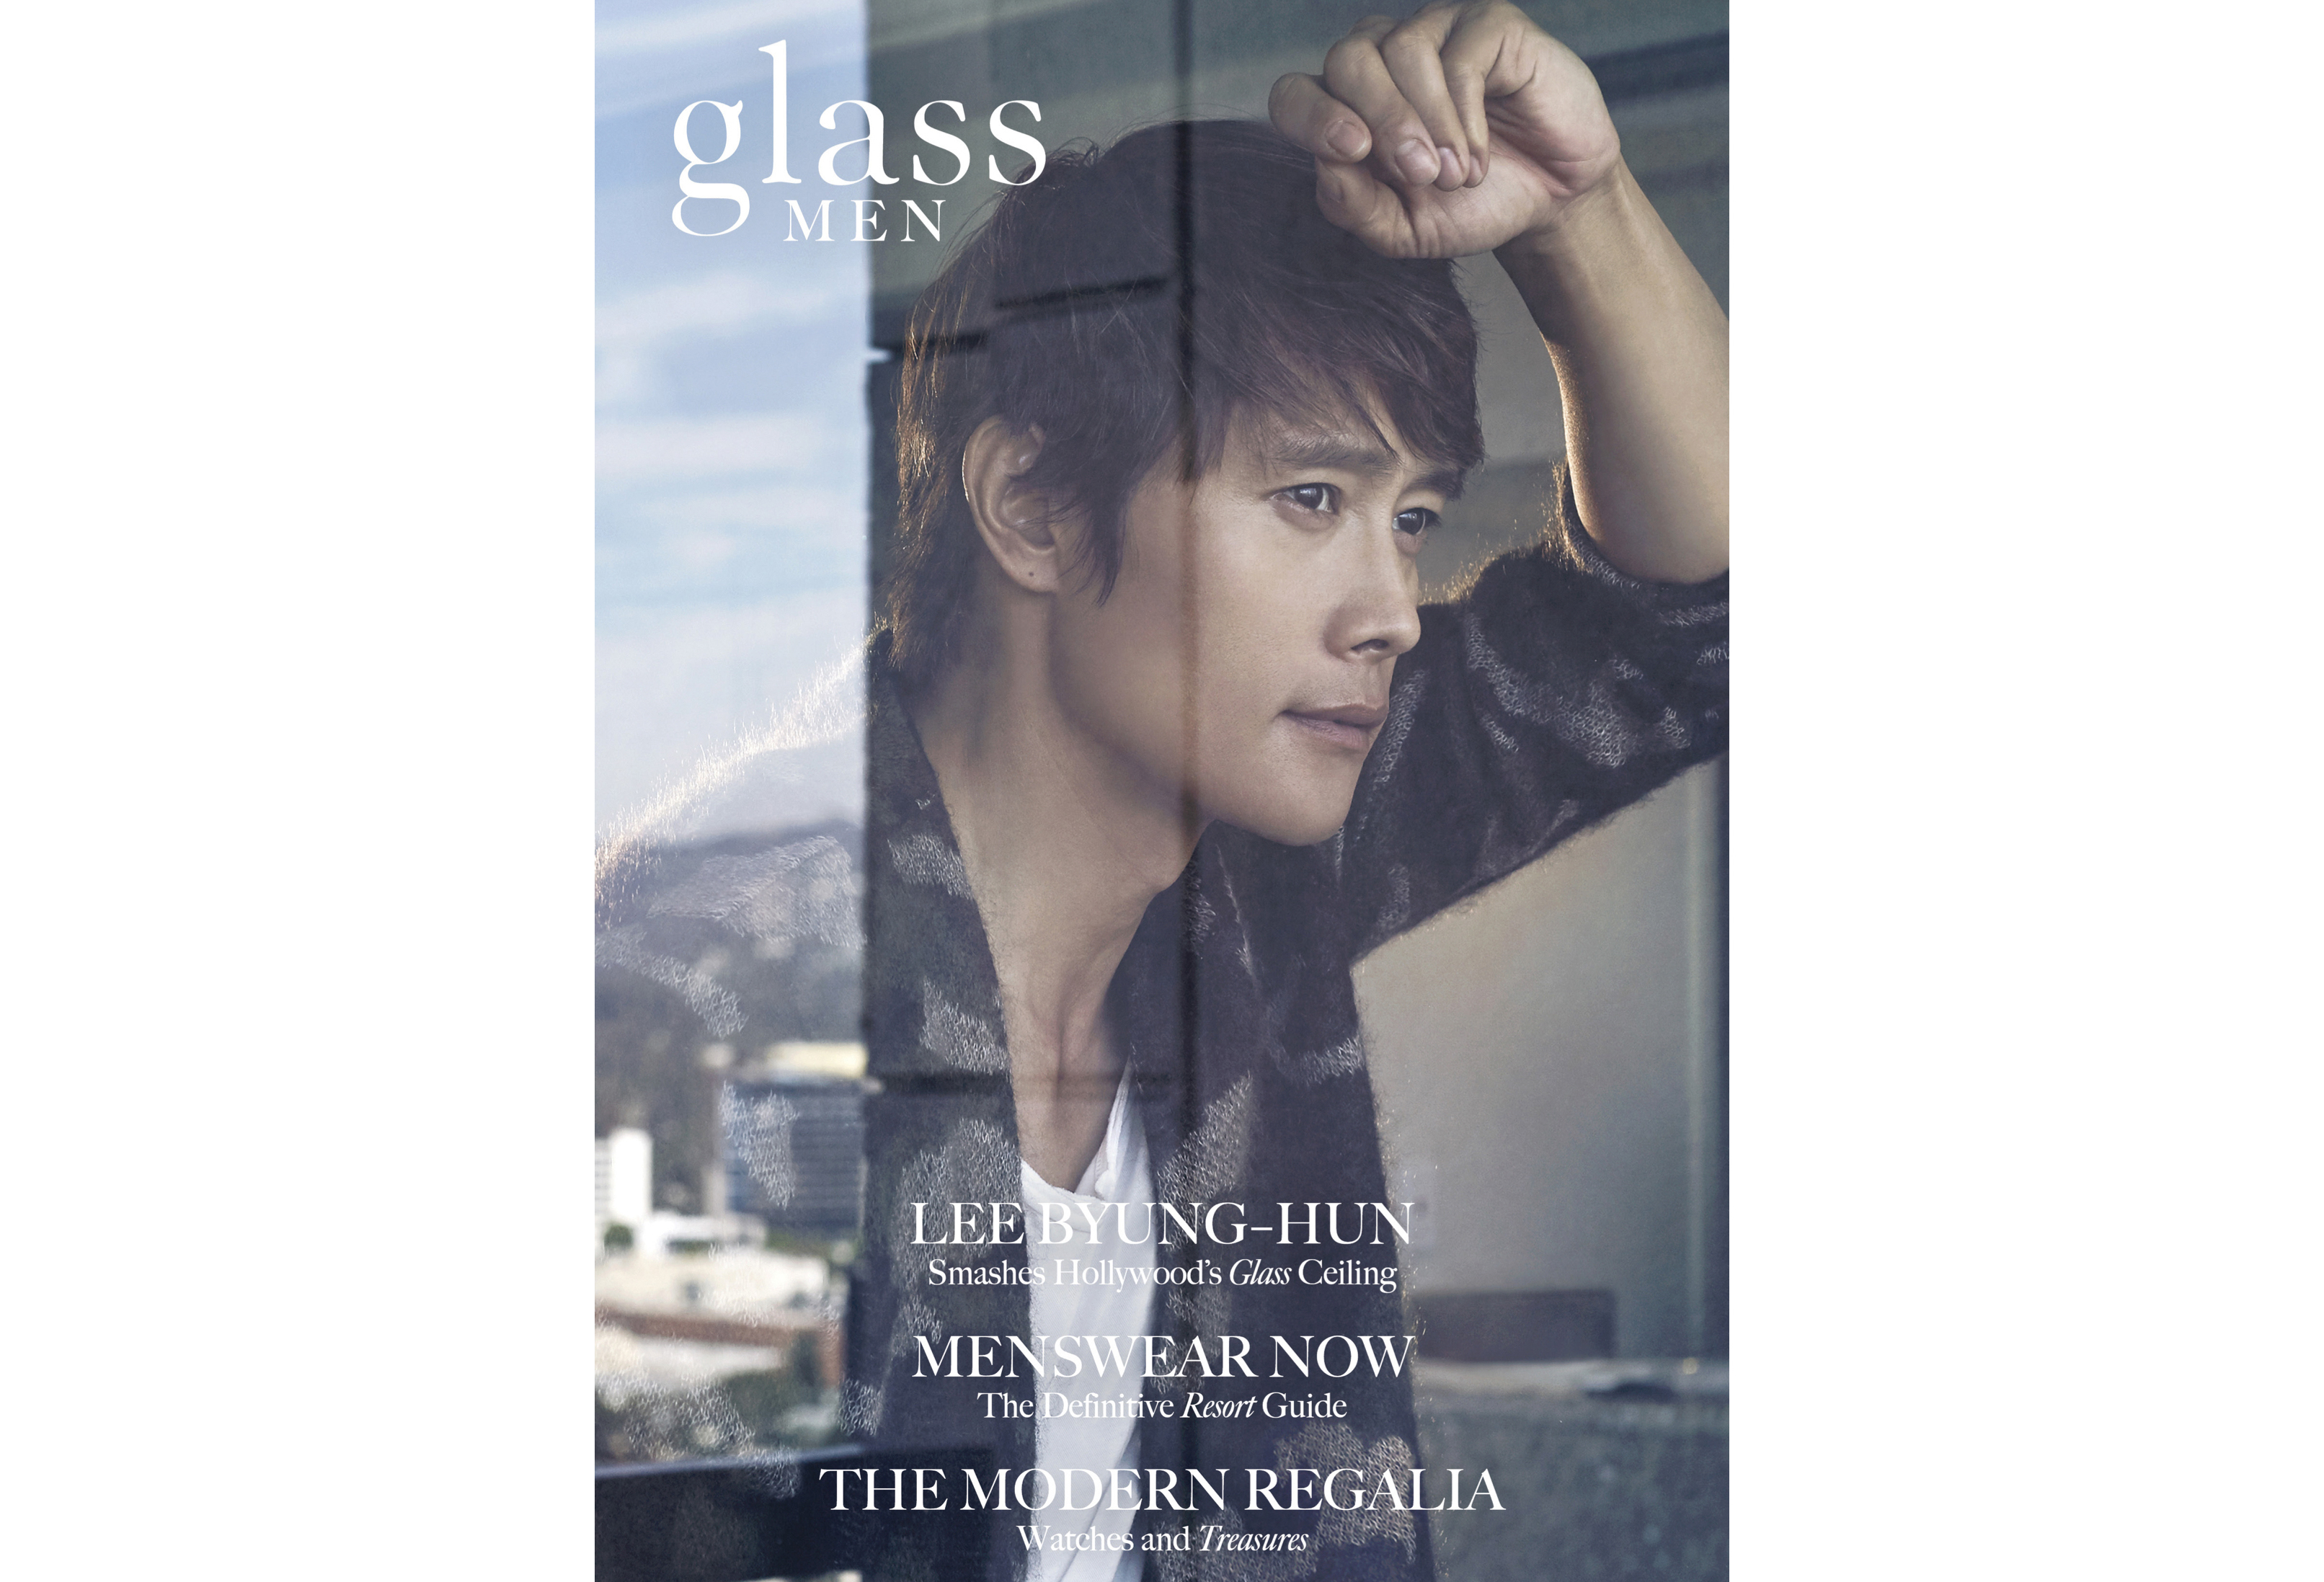 Glass MagazineCover.jpg